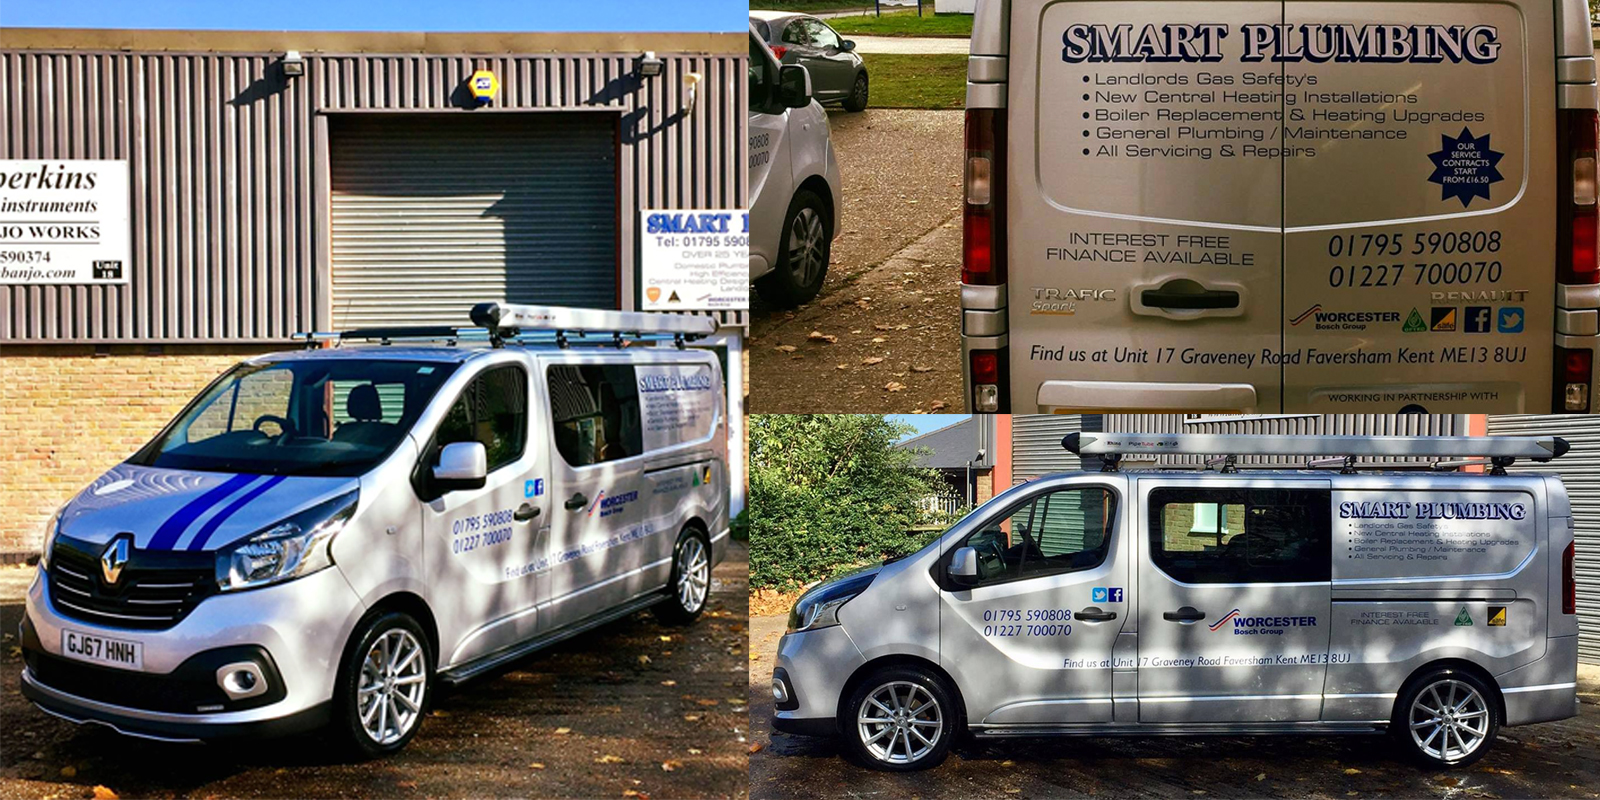 Smart Plumbing - Plumbing & Heating Faversham Whitstable Herne Bay Canterbury